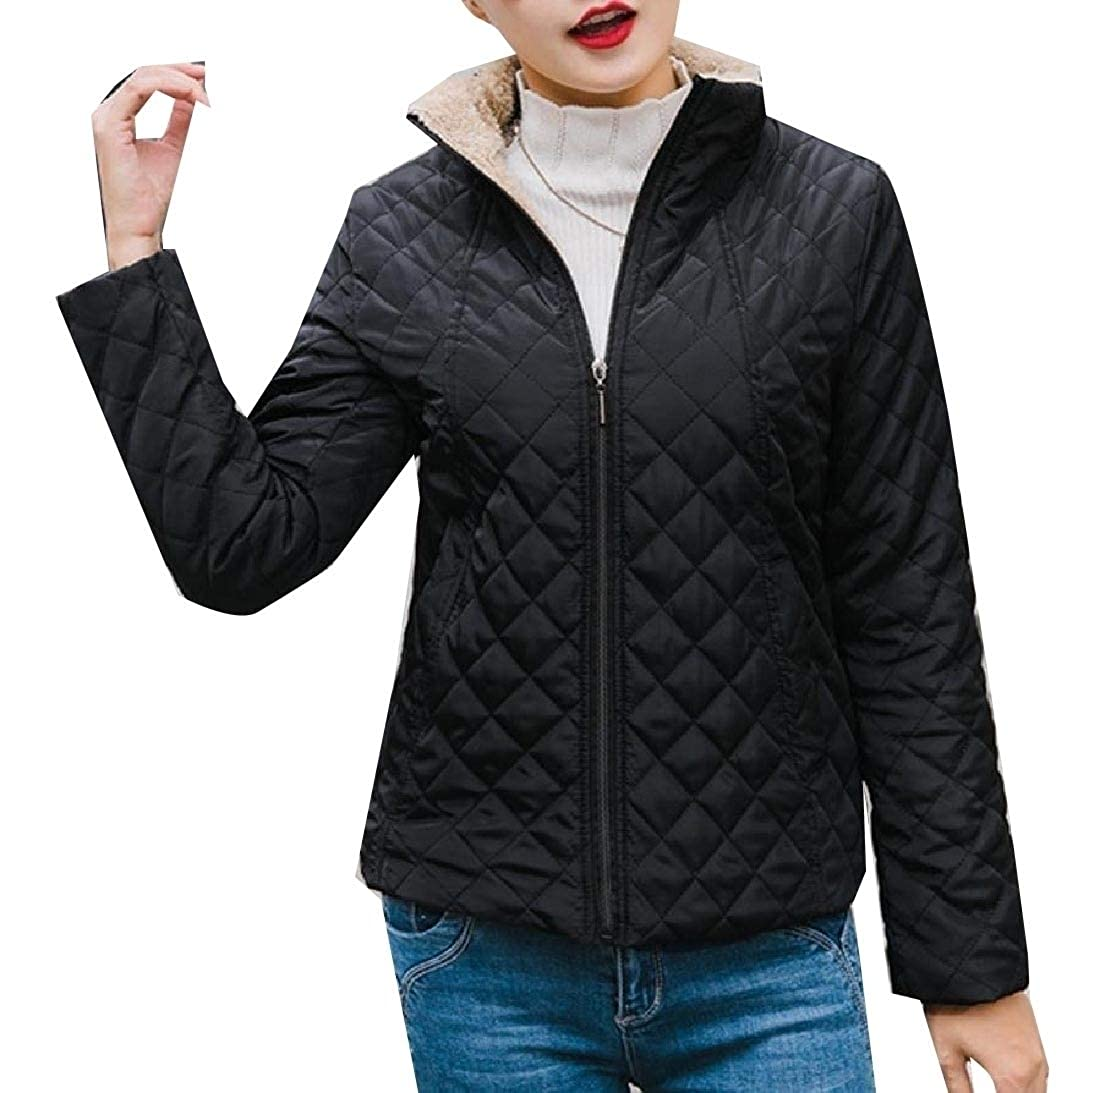 YUNY Womens Plus Velvet Quilted Outerwear Winter Coat Puffer Jacket Black XL